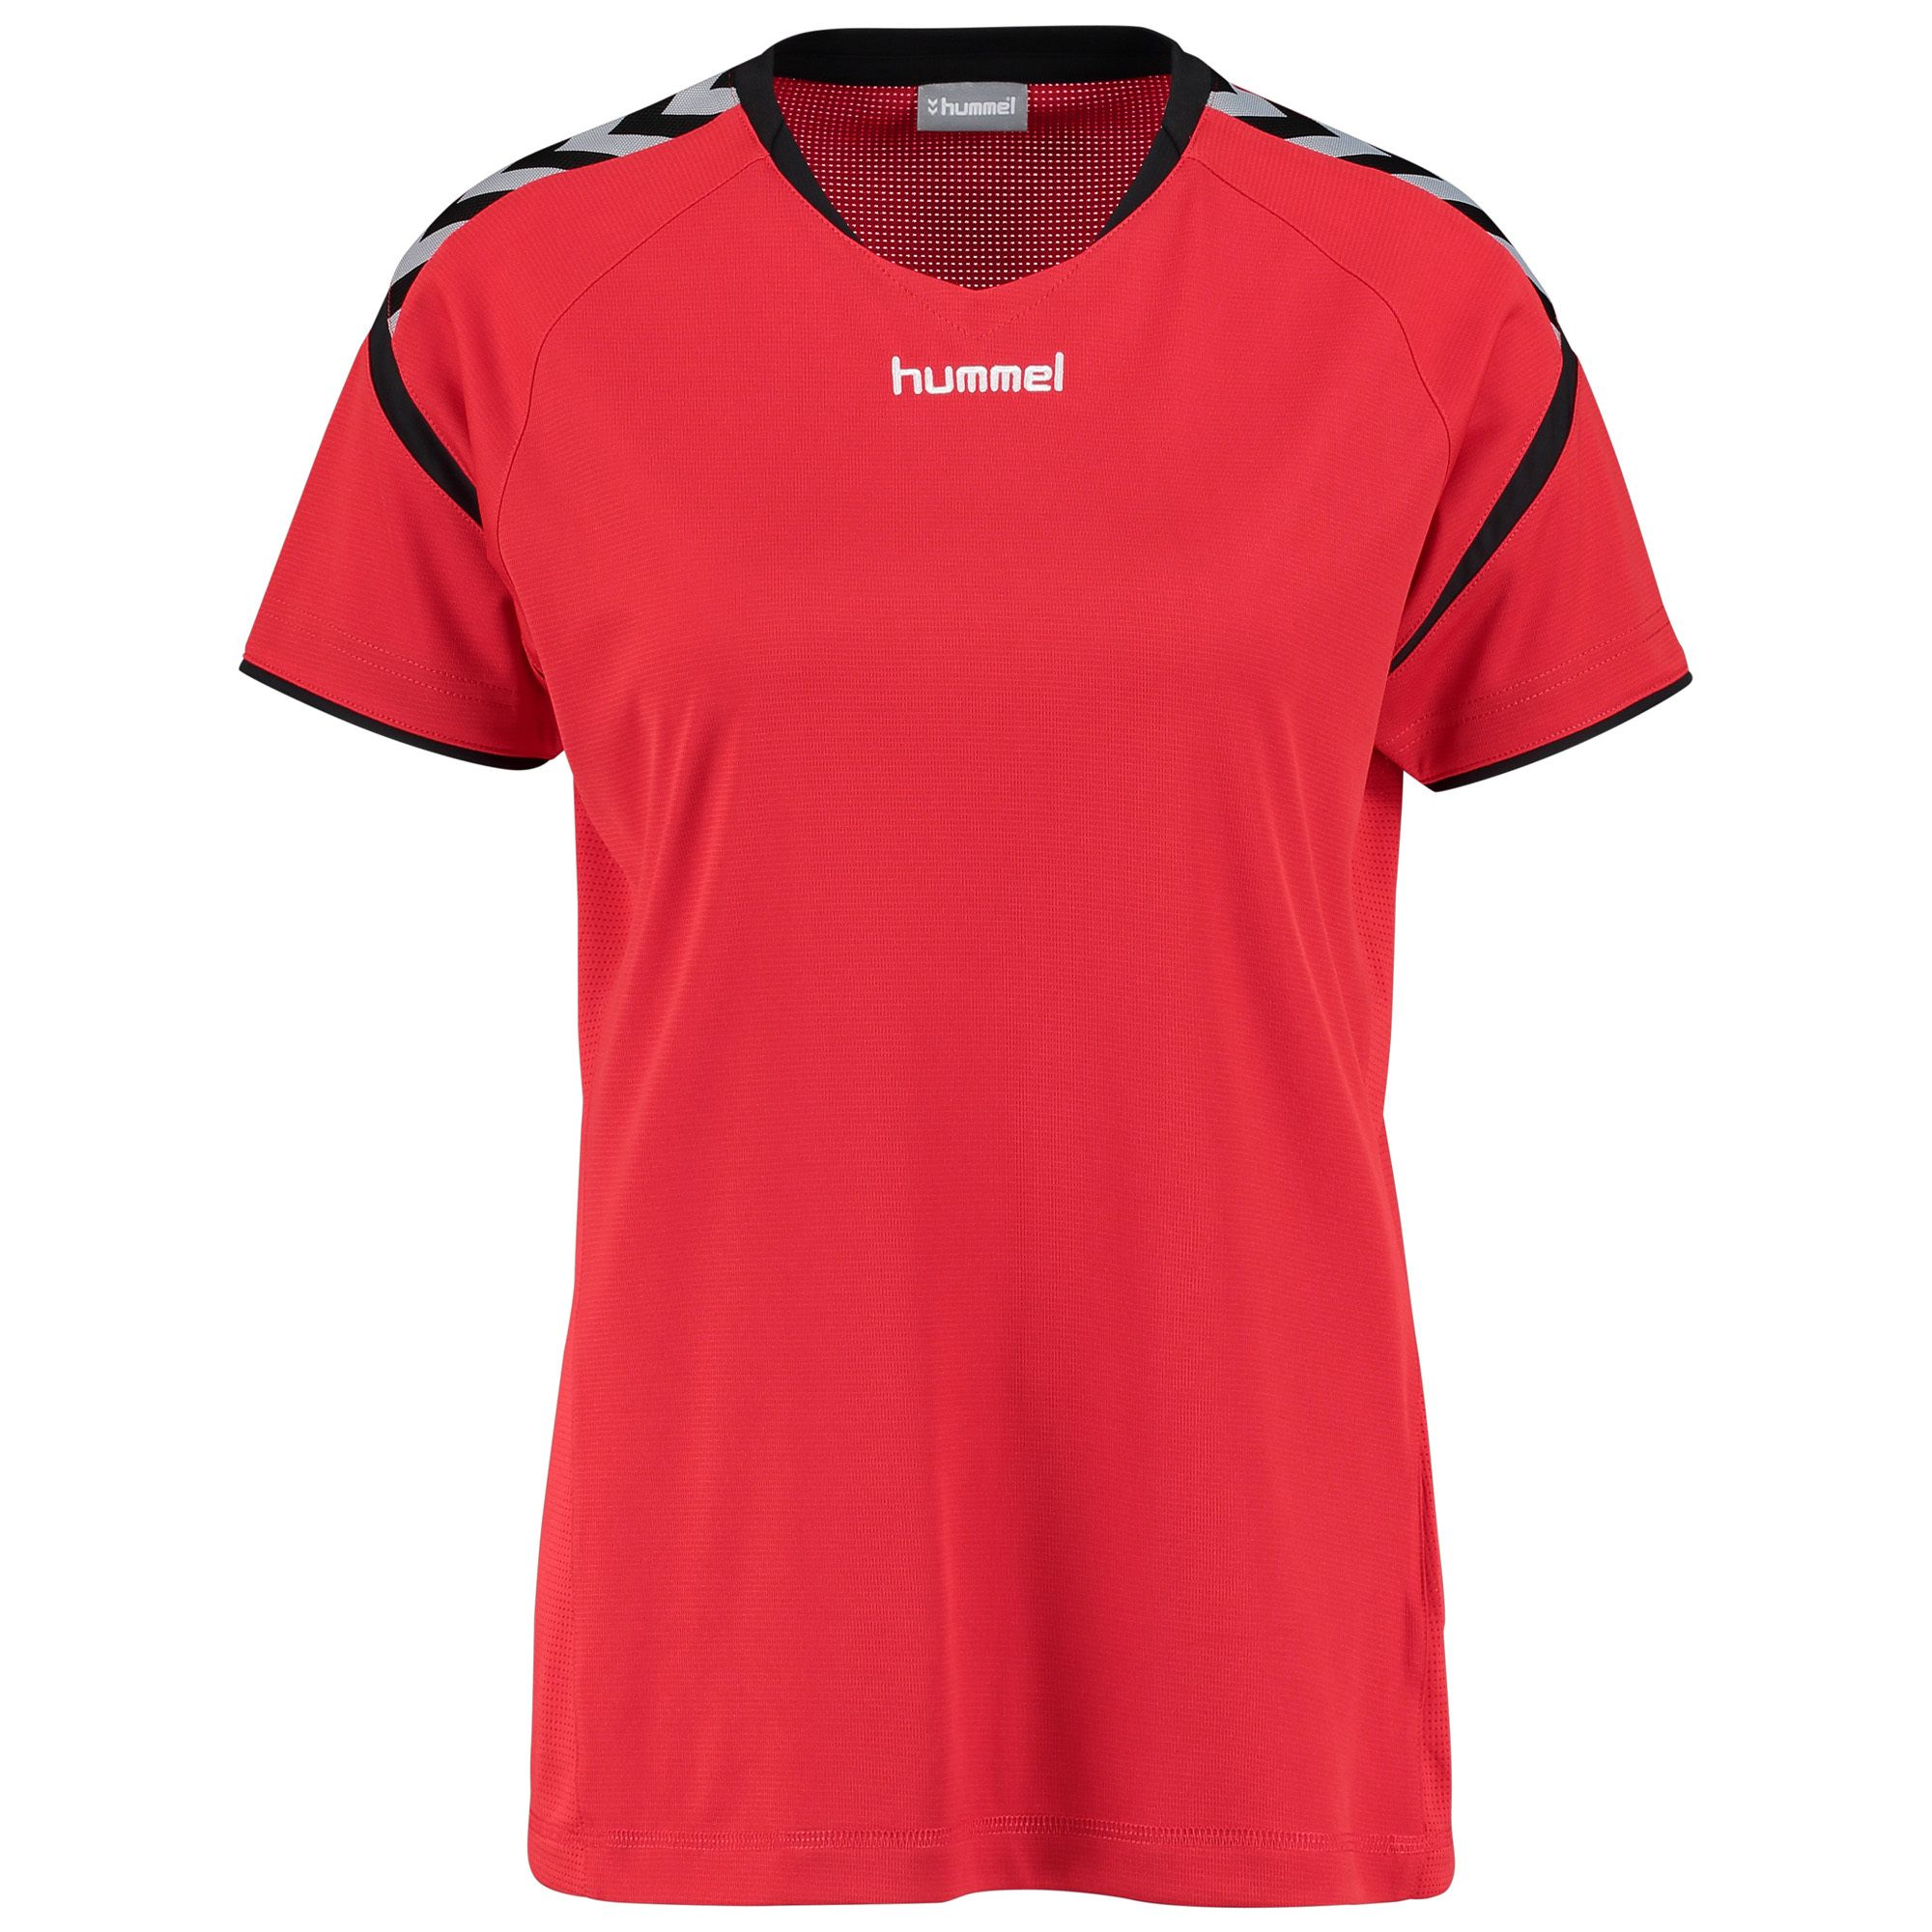 HUMMEL Hummel Authentic Charge Poly Handballtrikot Damen